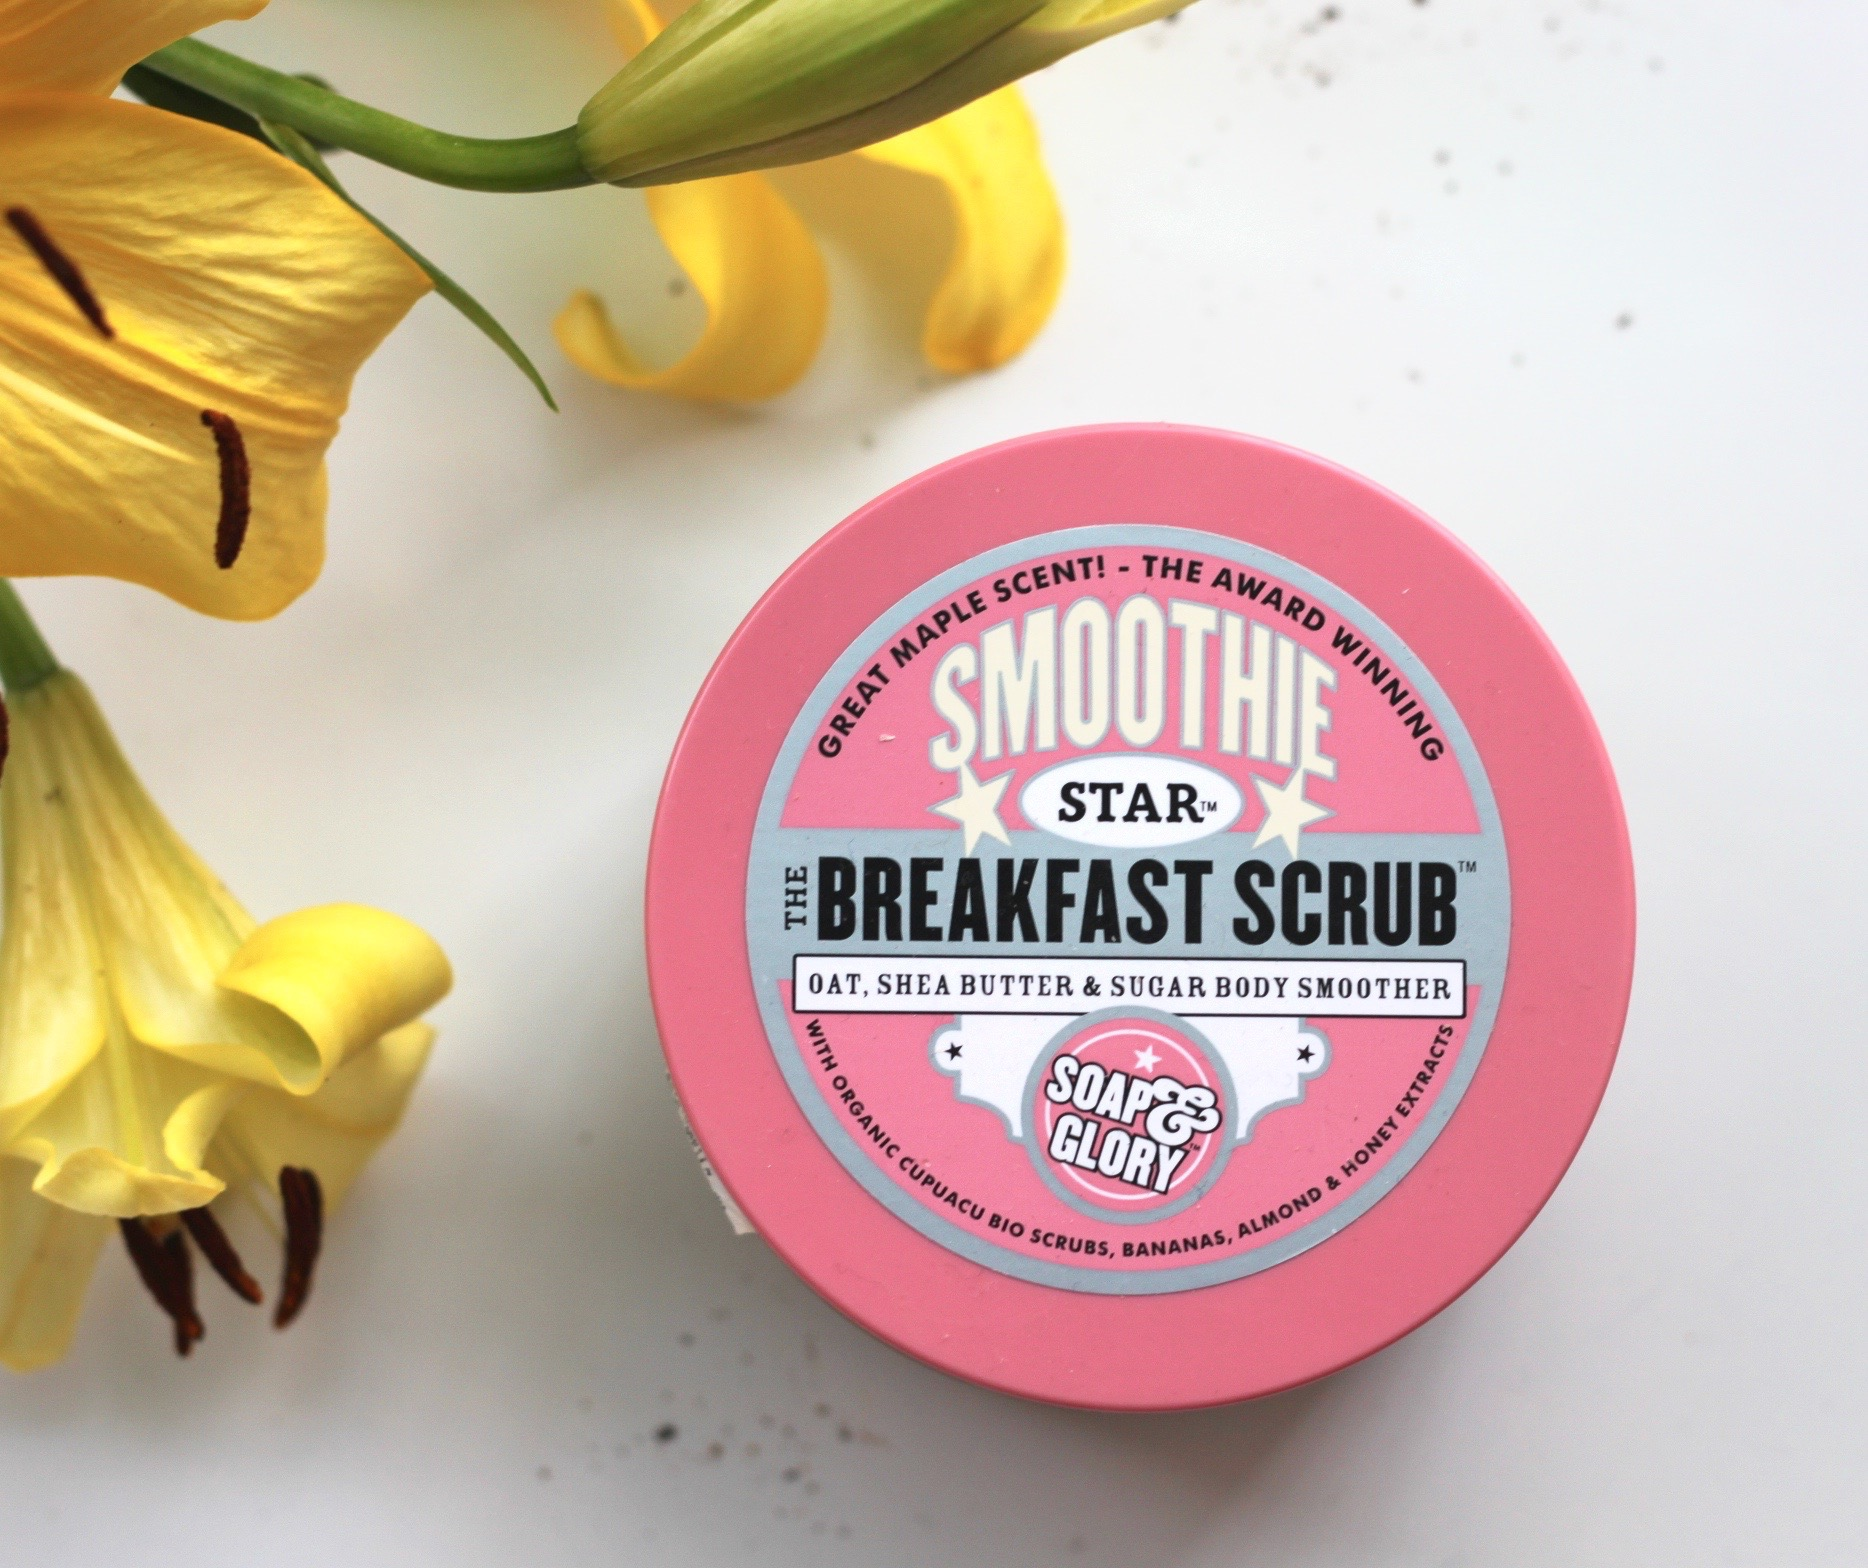 Soap and Glory Breakfast Scrub, Soap and Glory, Soap and Glory Scrub, Breakfast scrub